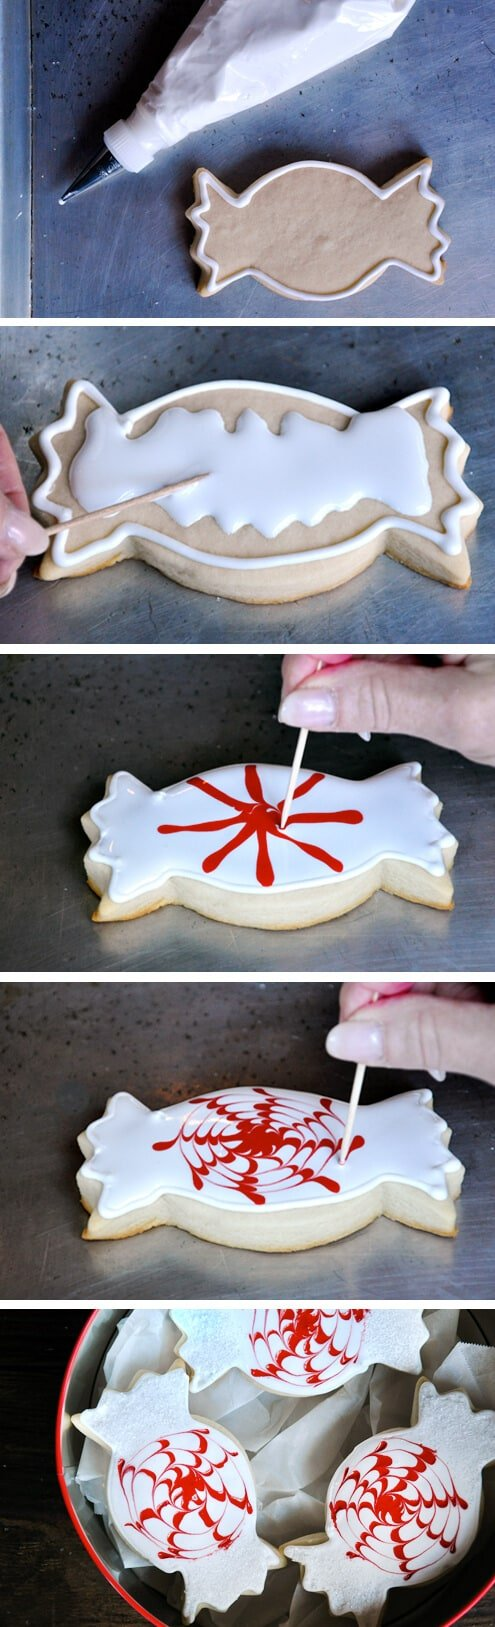 Peppermint Candy Cookies from justataste.com #recipe